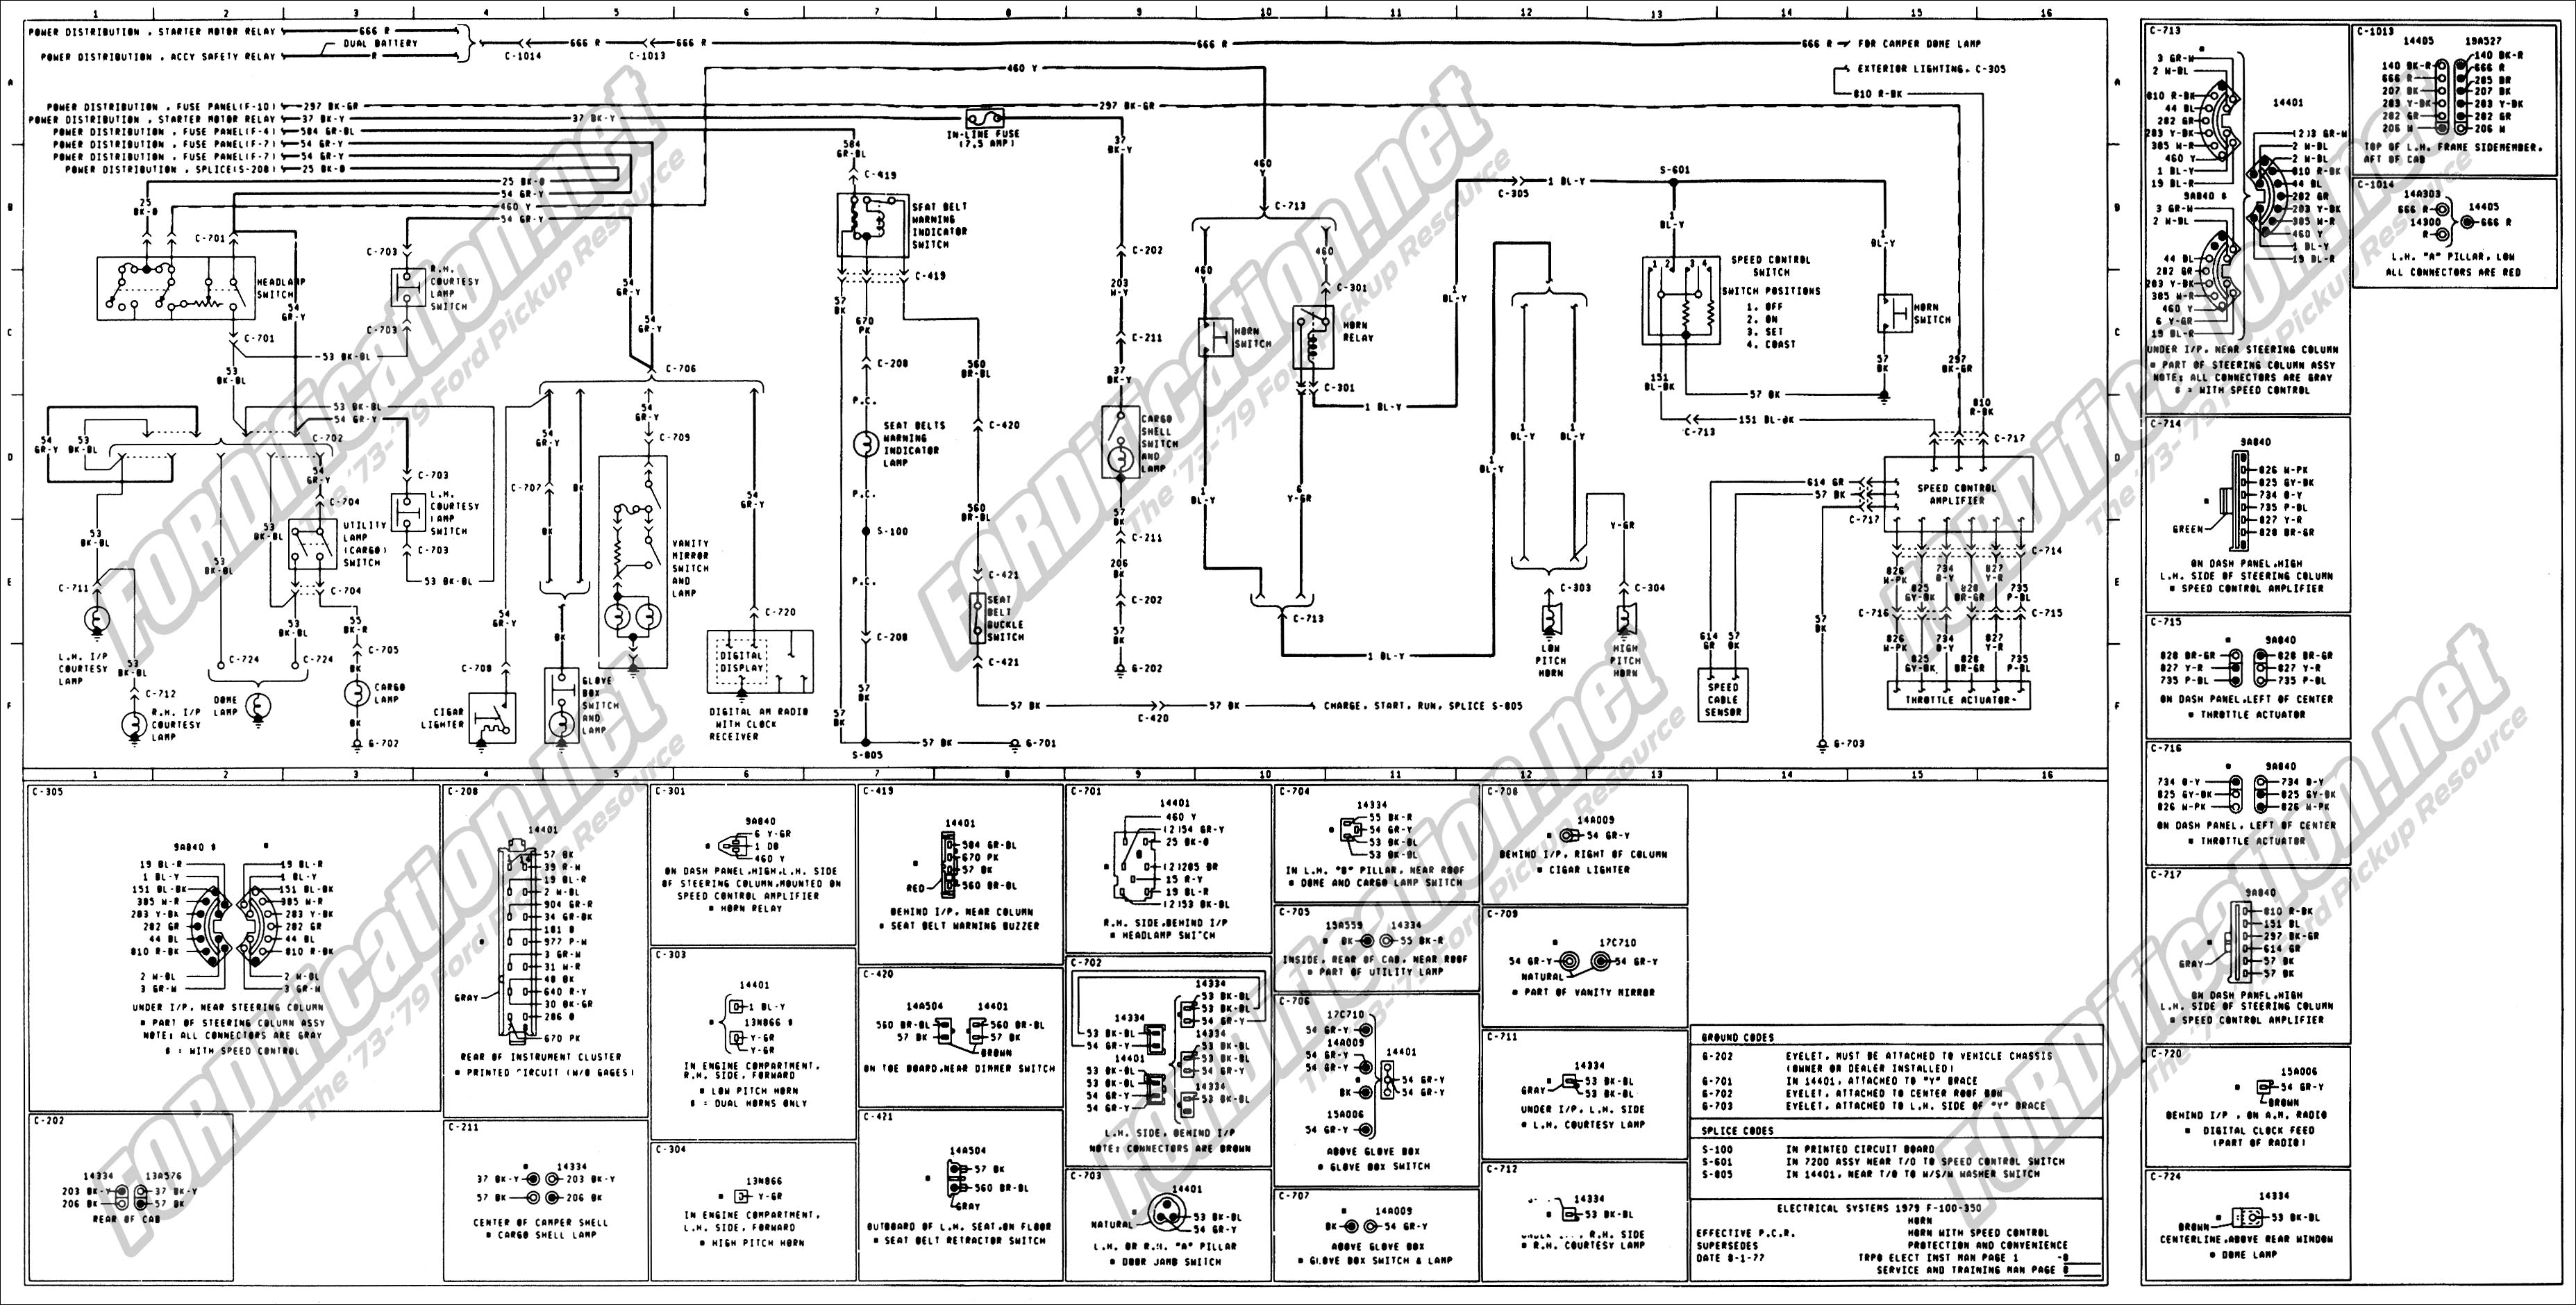 1973 1979 ford truck wiring diagrams schematics fordification net rh fordification net 1999 Ford F-150 Fuse Diagram 1999 Ford F-150 Parts Diagram